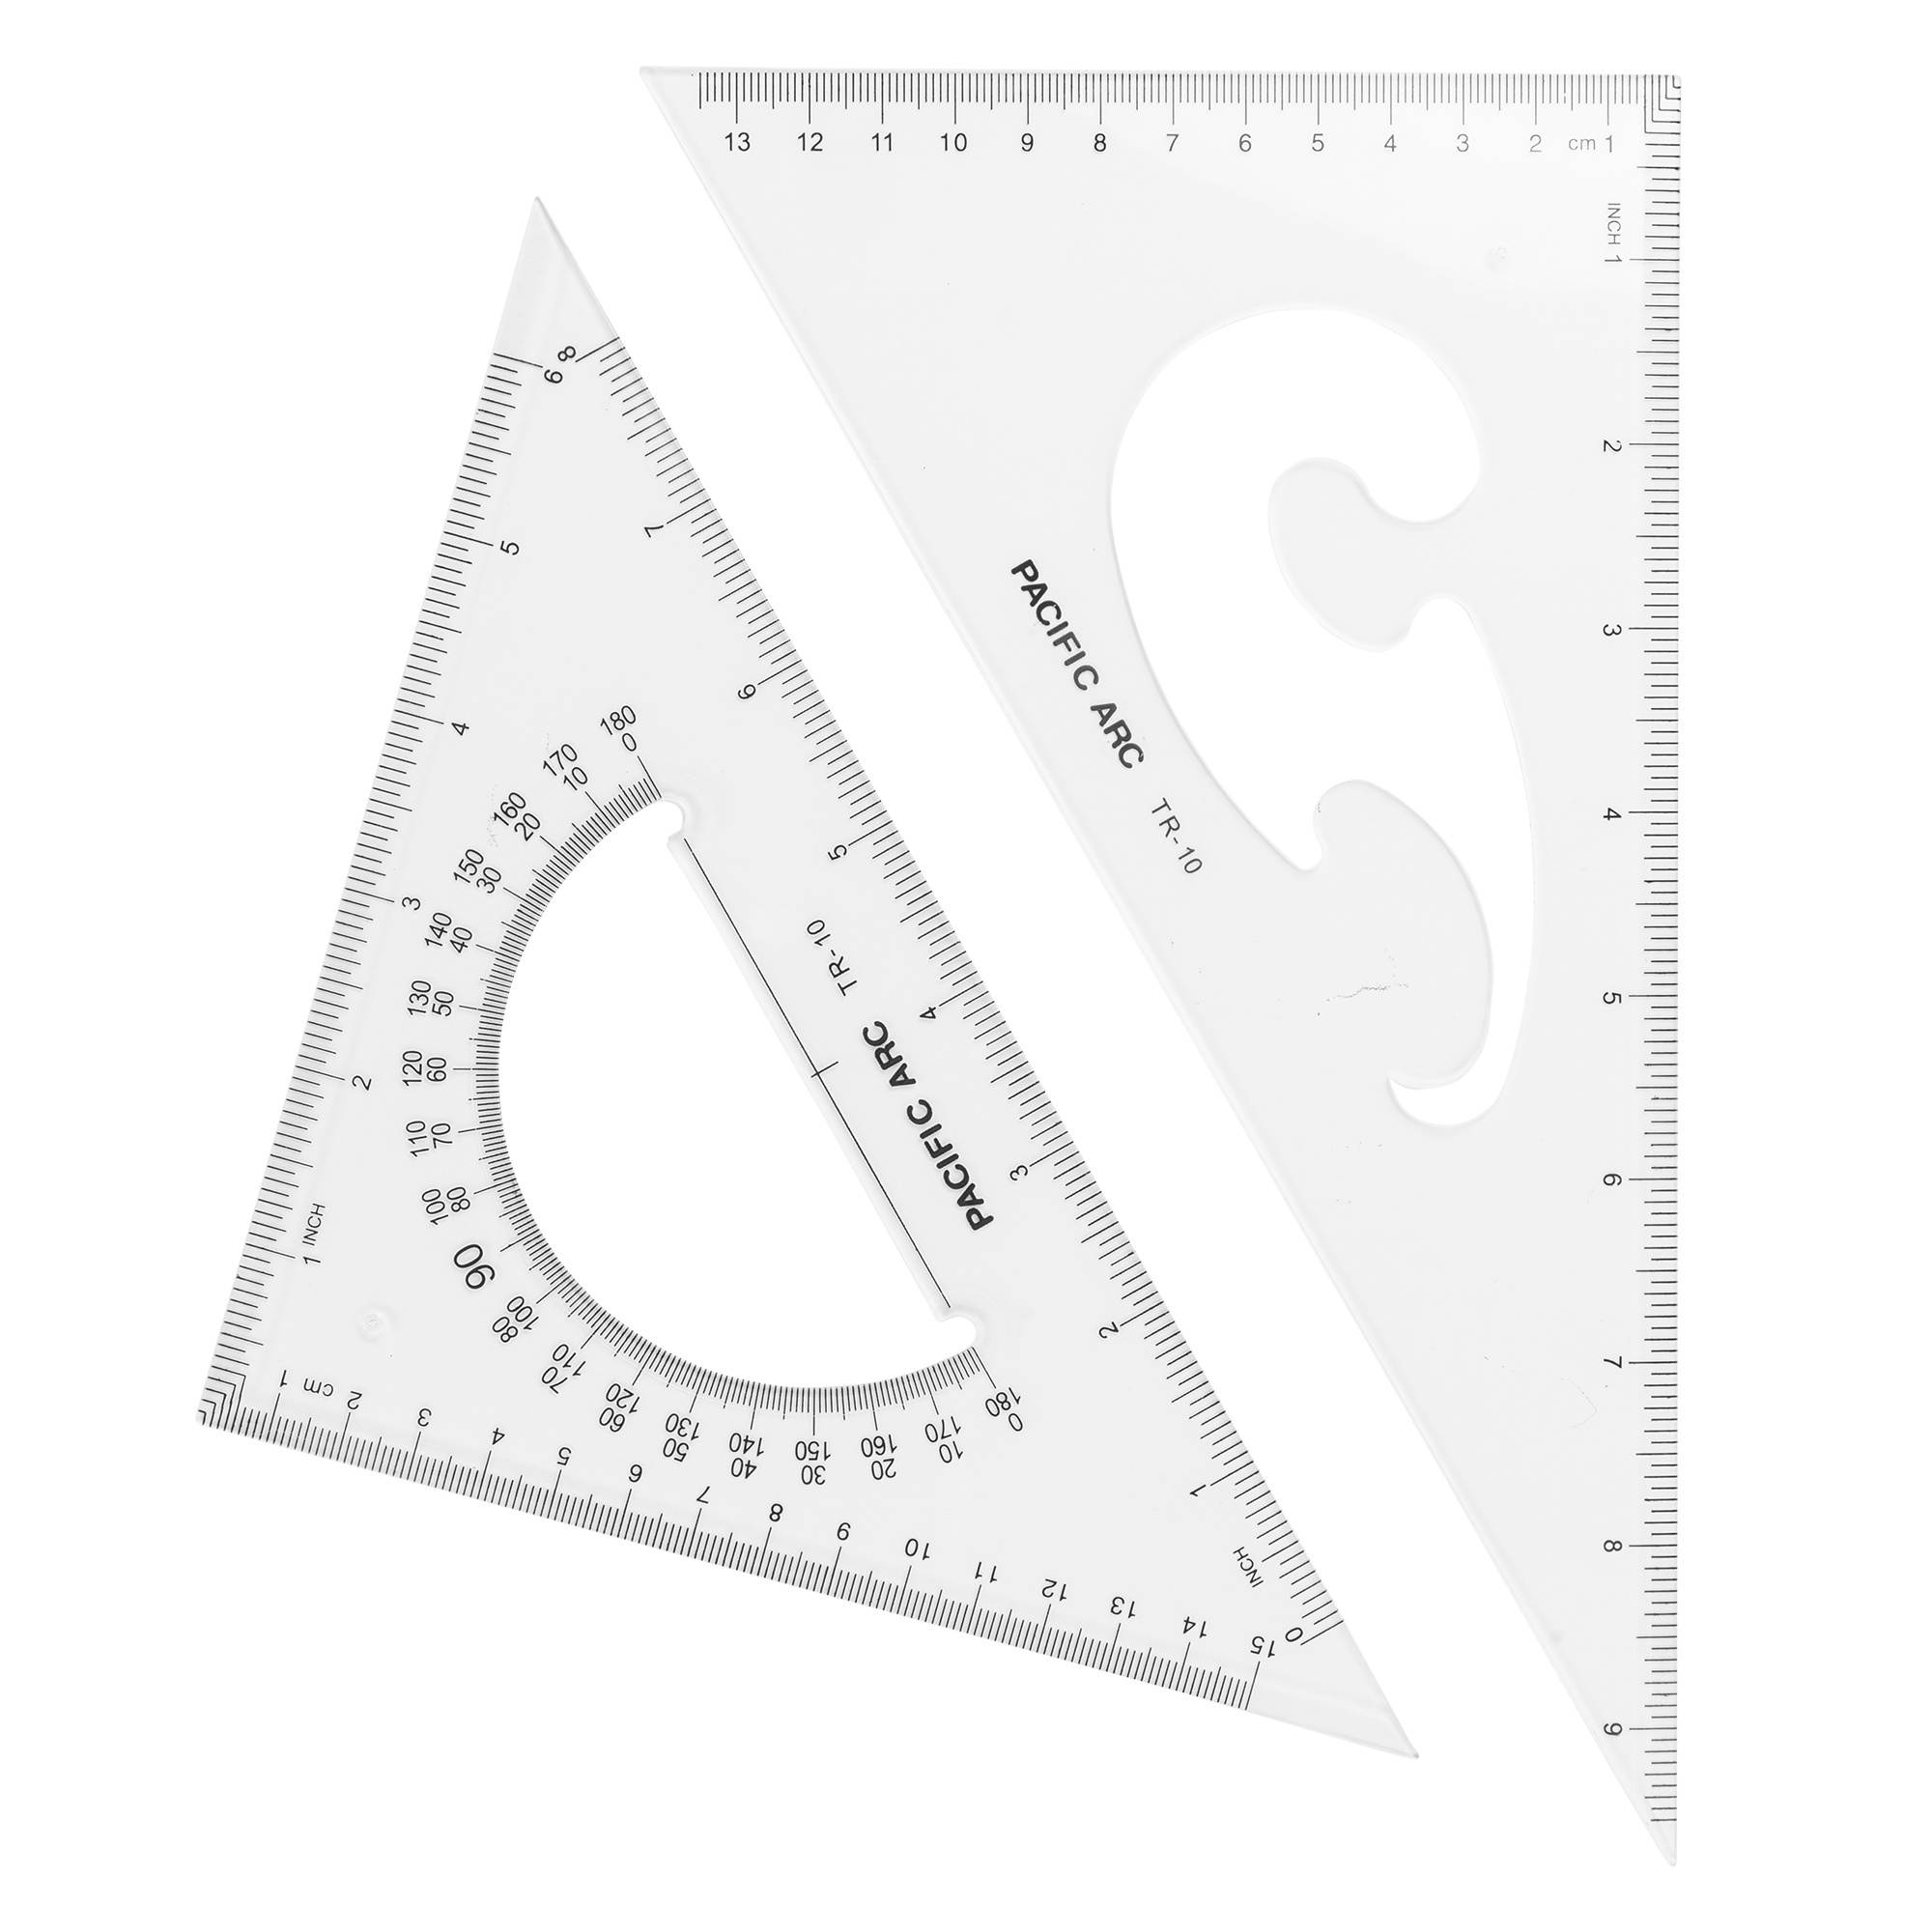 large scholastic acrylic double triangle with protractor and french curve inside the triangle design by pacific arc